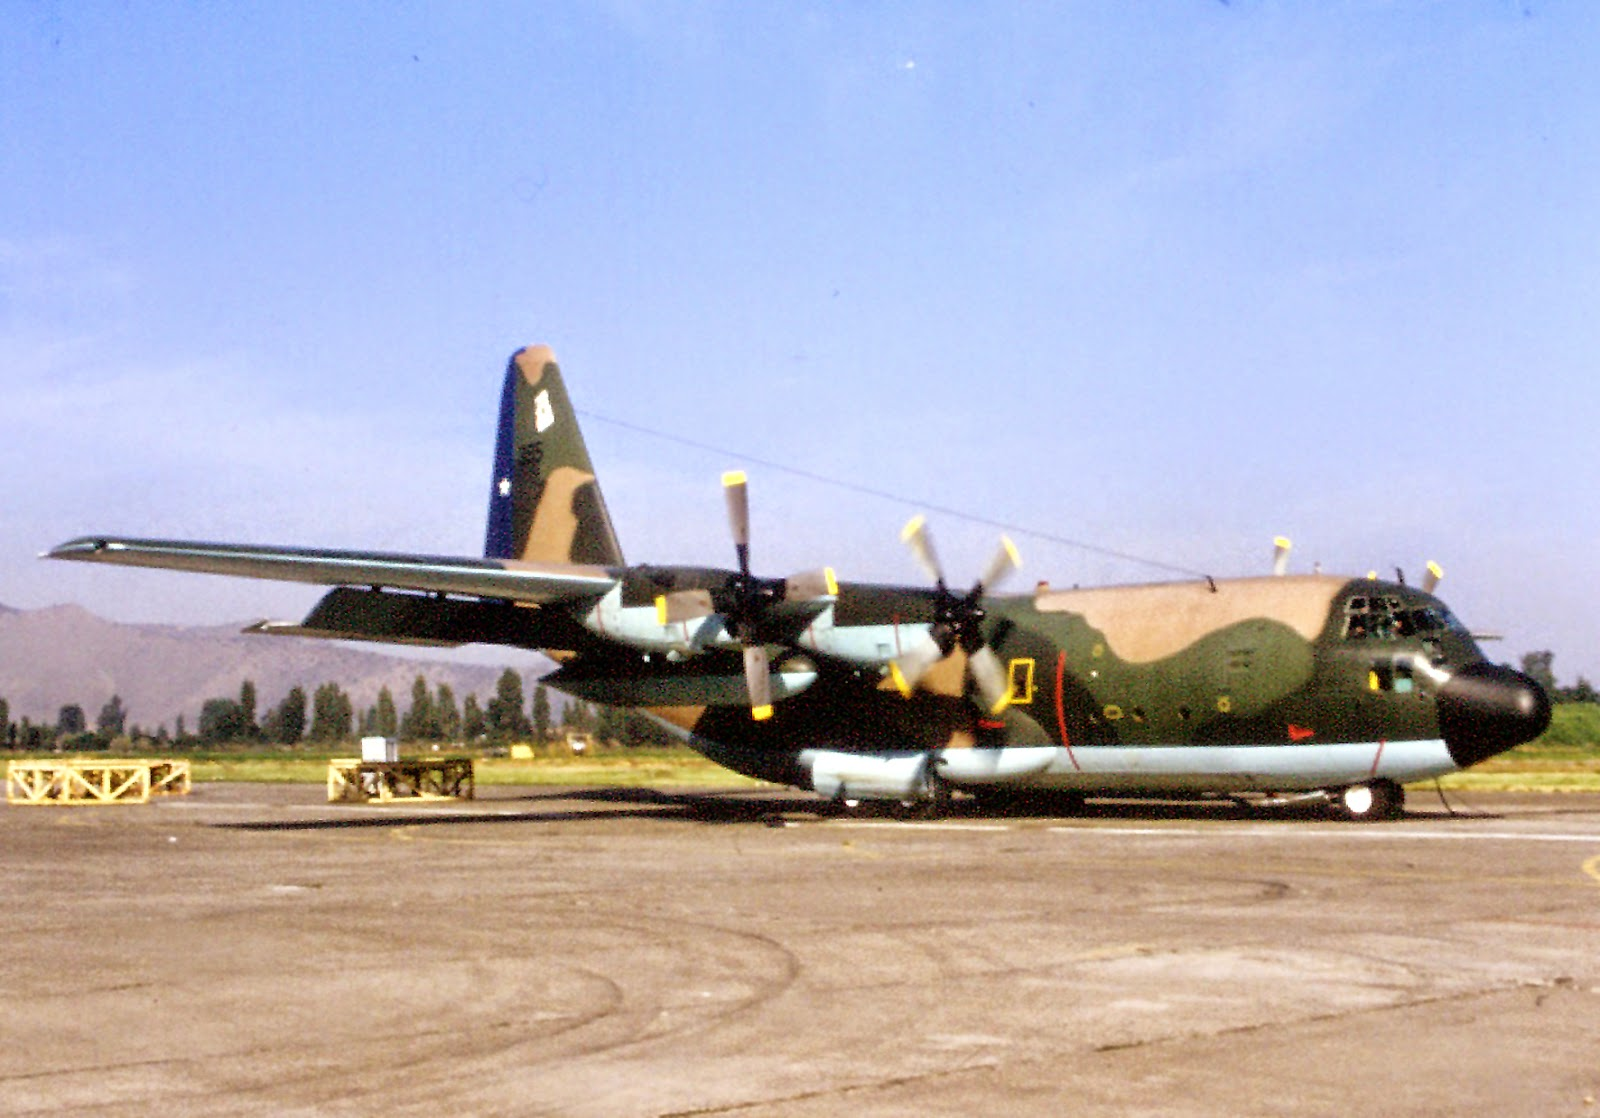 http://c-130chile.blogspot.com/